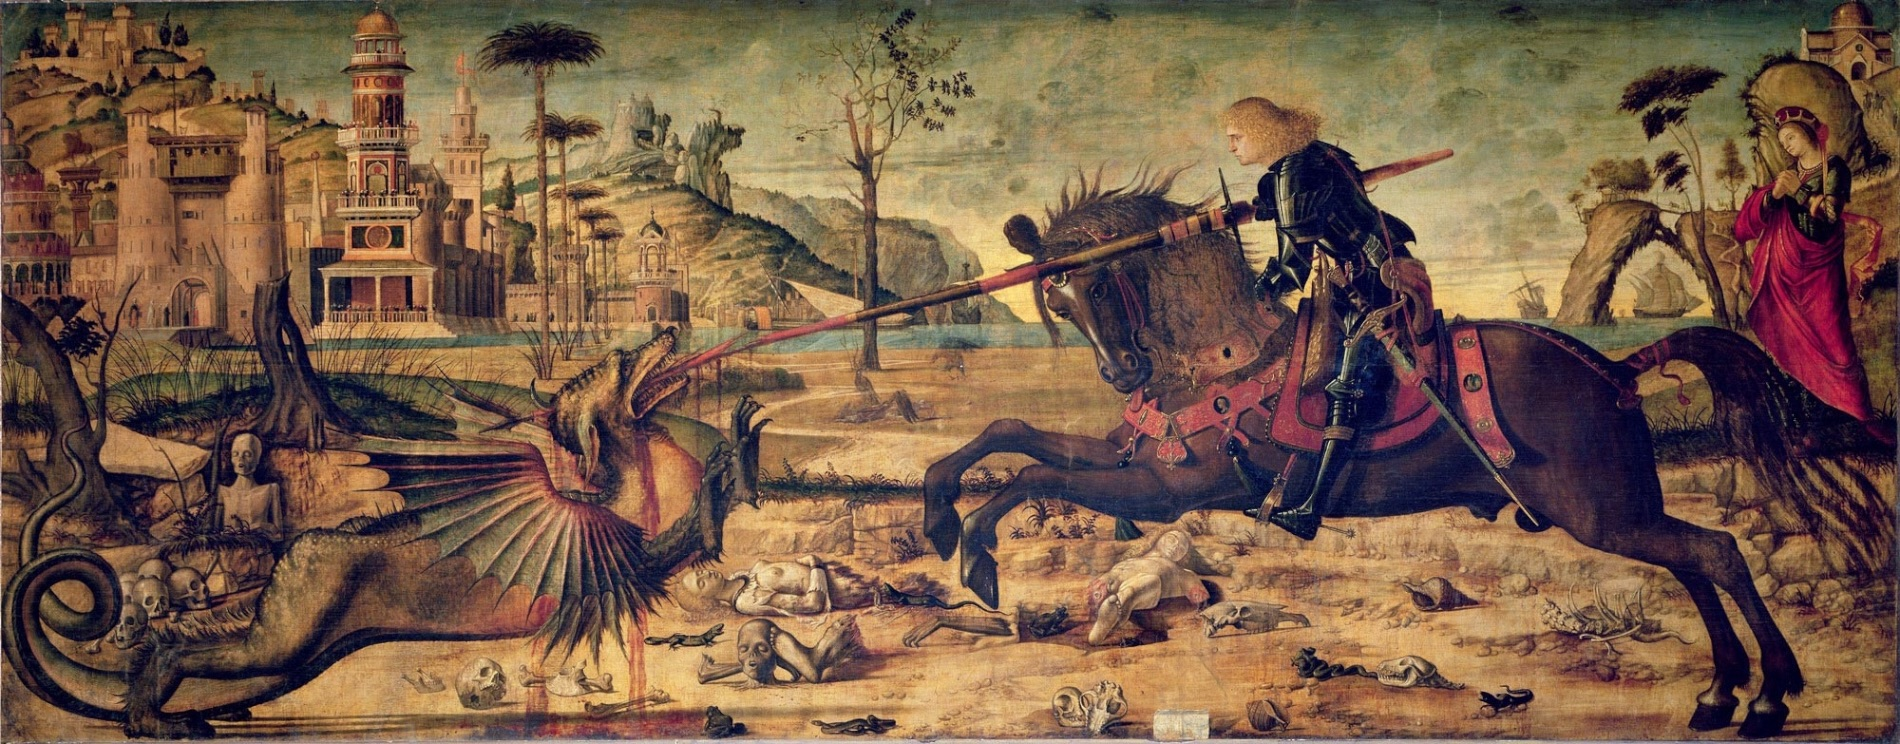 Vittore Carpaccio: St. George and the Dragon, 1502.